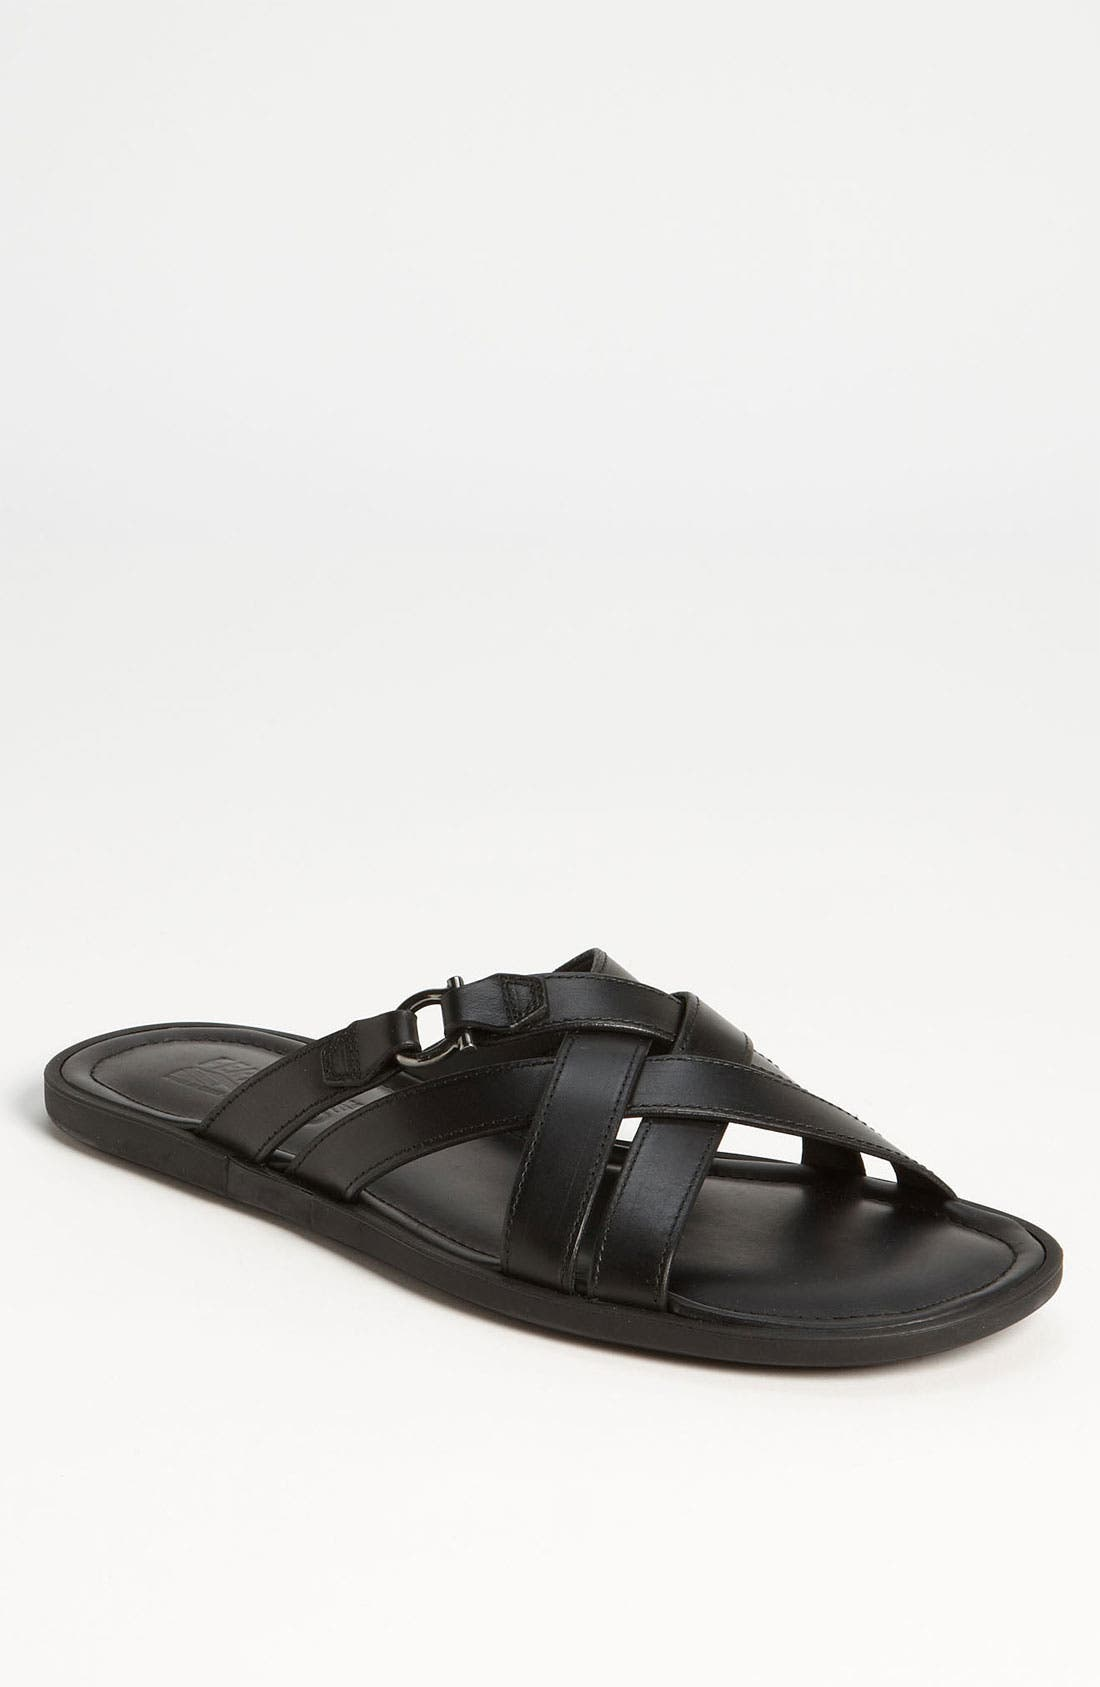 Main Image - Salvatore Ferragamo 'Tirreno' Cross Strap Sandal